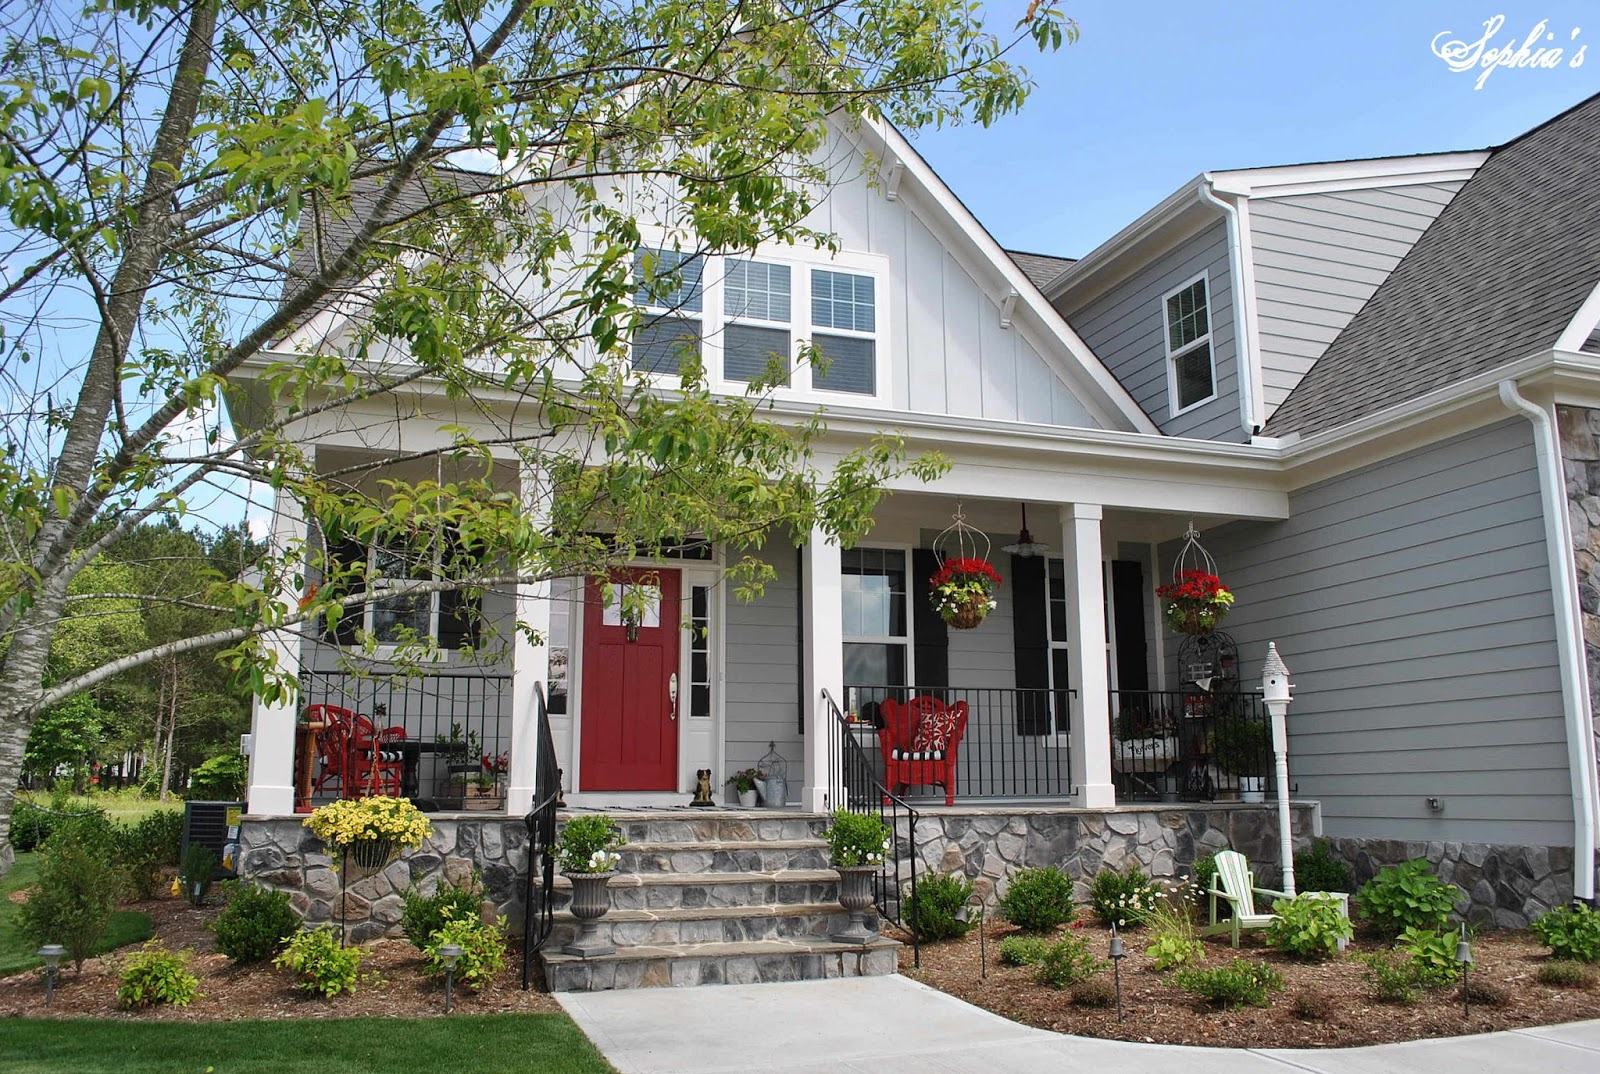 Home Decor Ideas On A Budget Blog Sophia S Farmhouse Style Front Porch With Pops Of Red